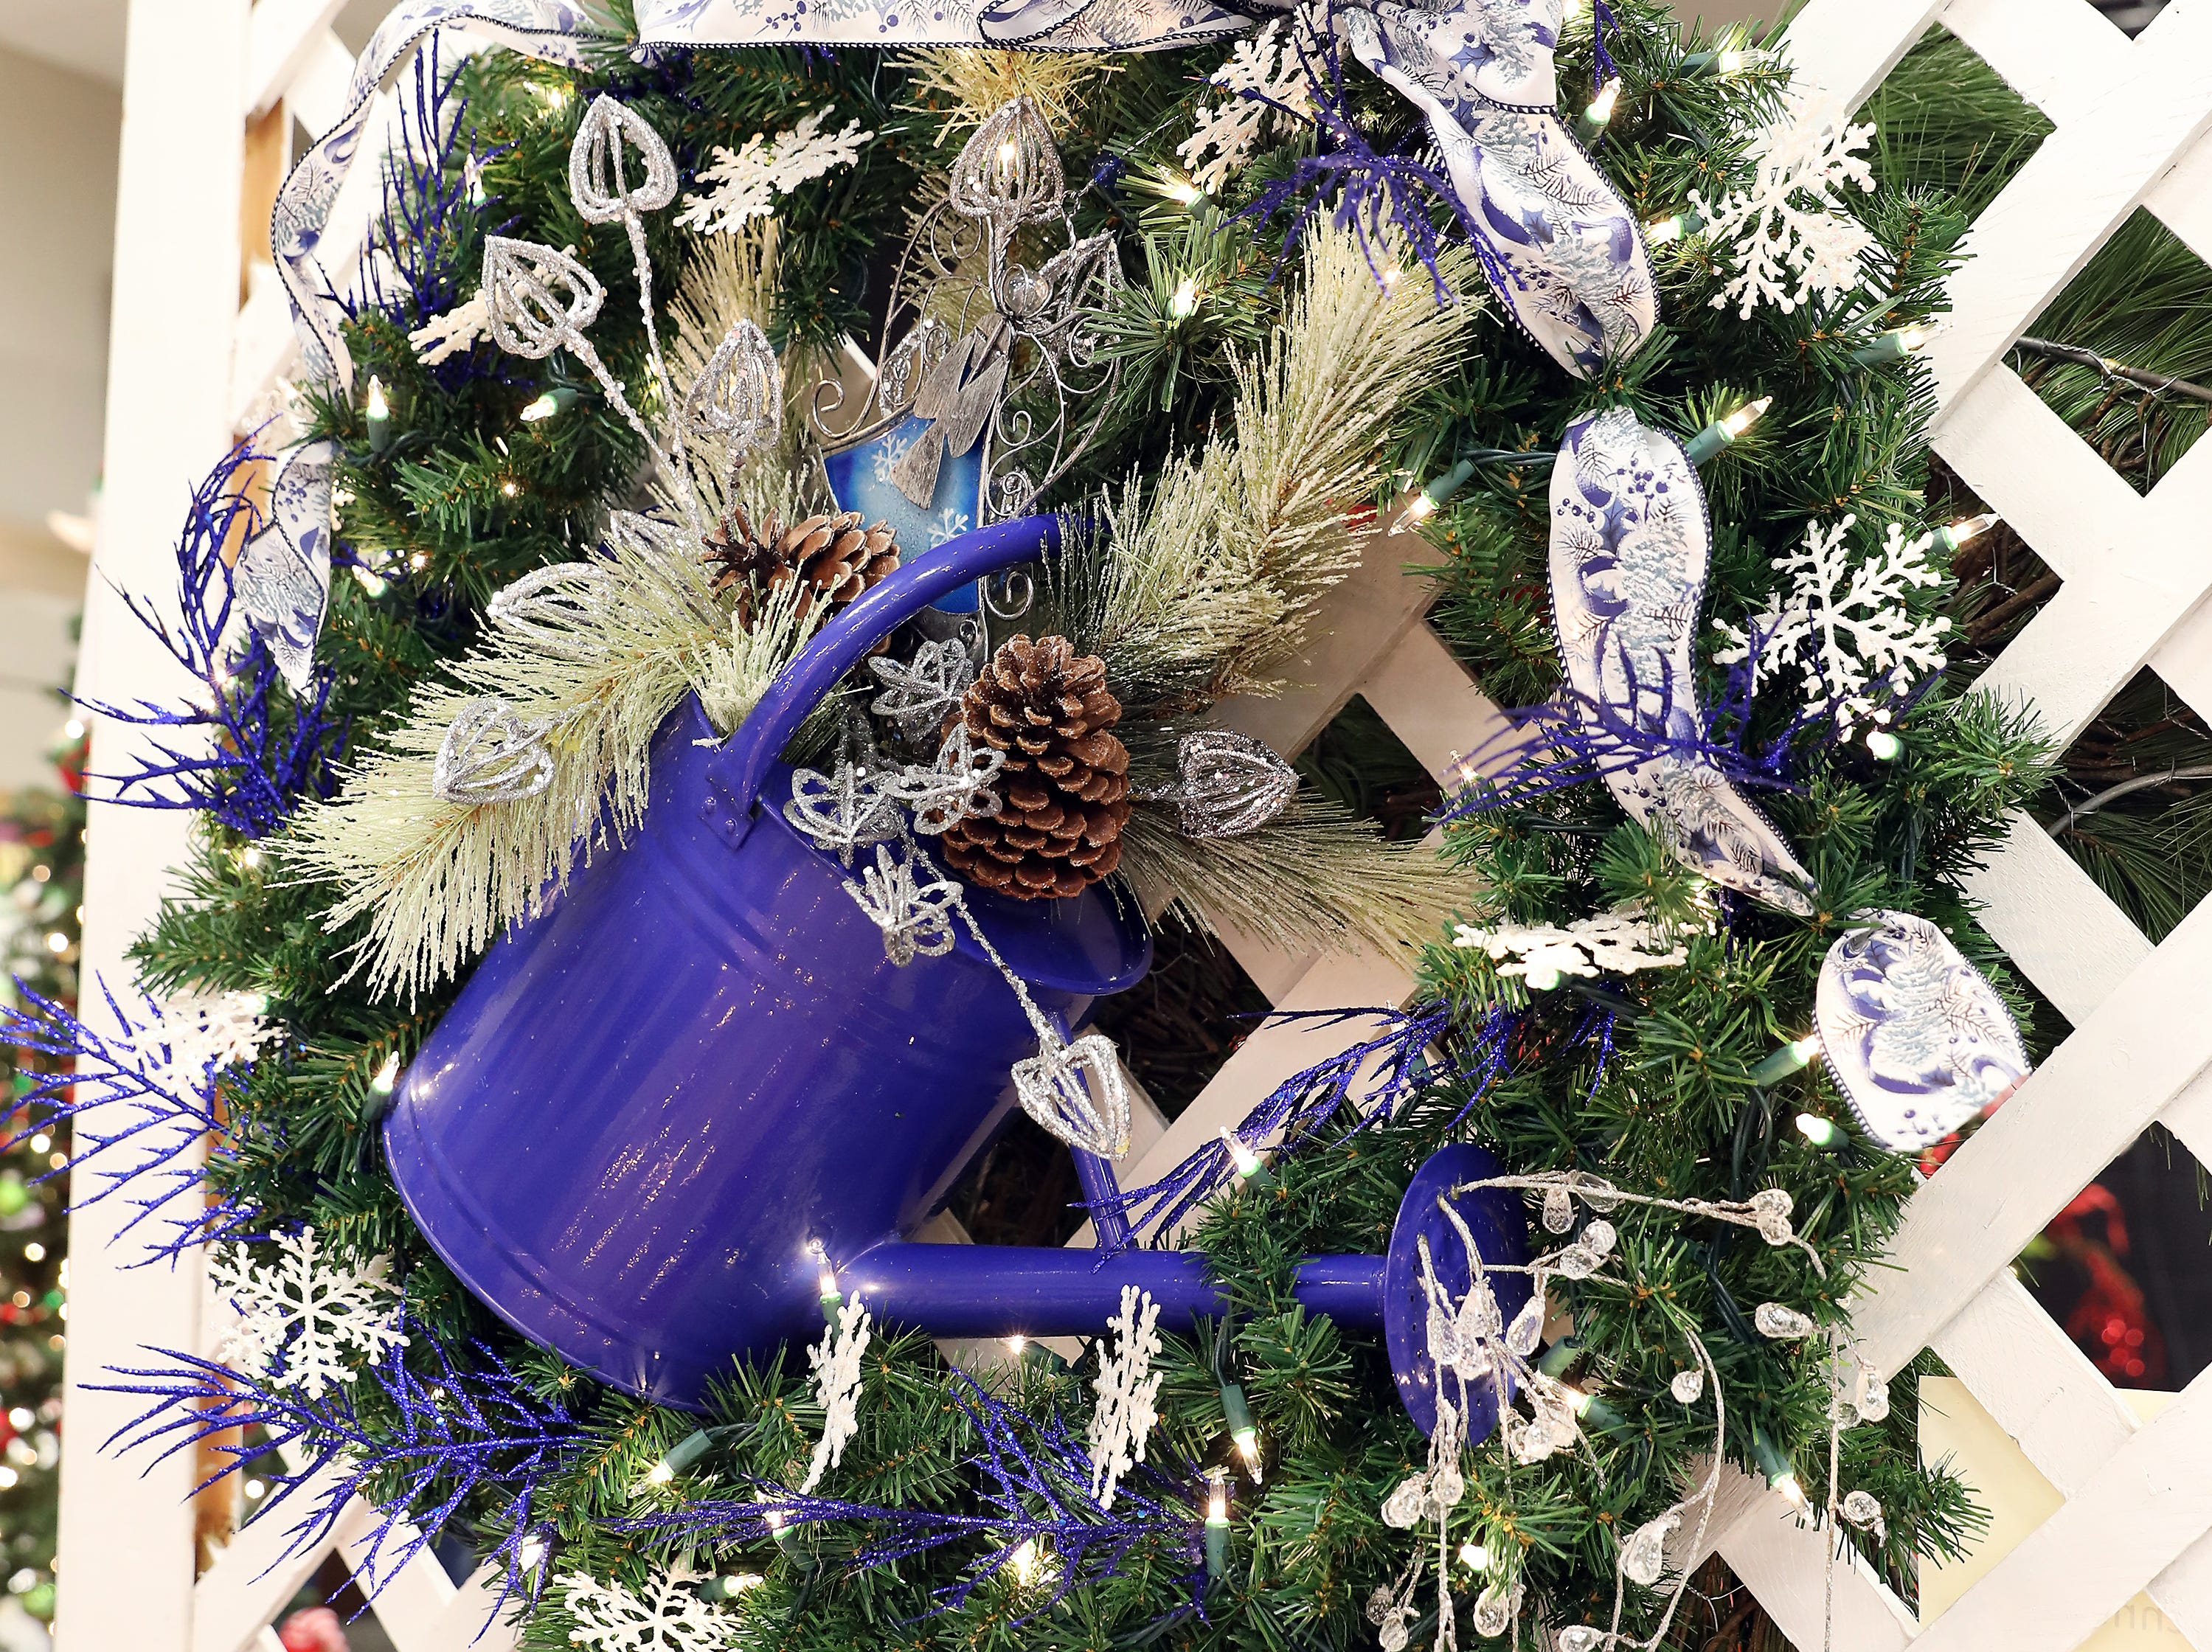 "135	2:15 PM	Muskingum Valley Garden Society	Wreath	Garden Beautiful 	A green pine wreath accented with blue and white.  Large blue tin watering can in the center of the wreath.		4 tickets to attend the ""Spring Fling Garden Symposium"" and 3 garden books."